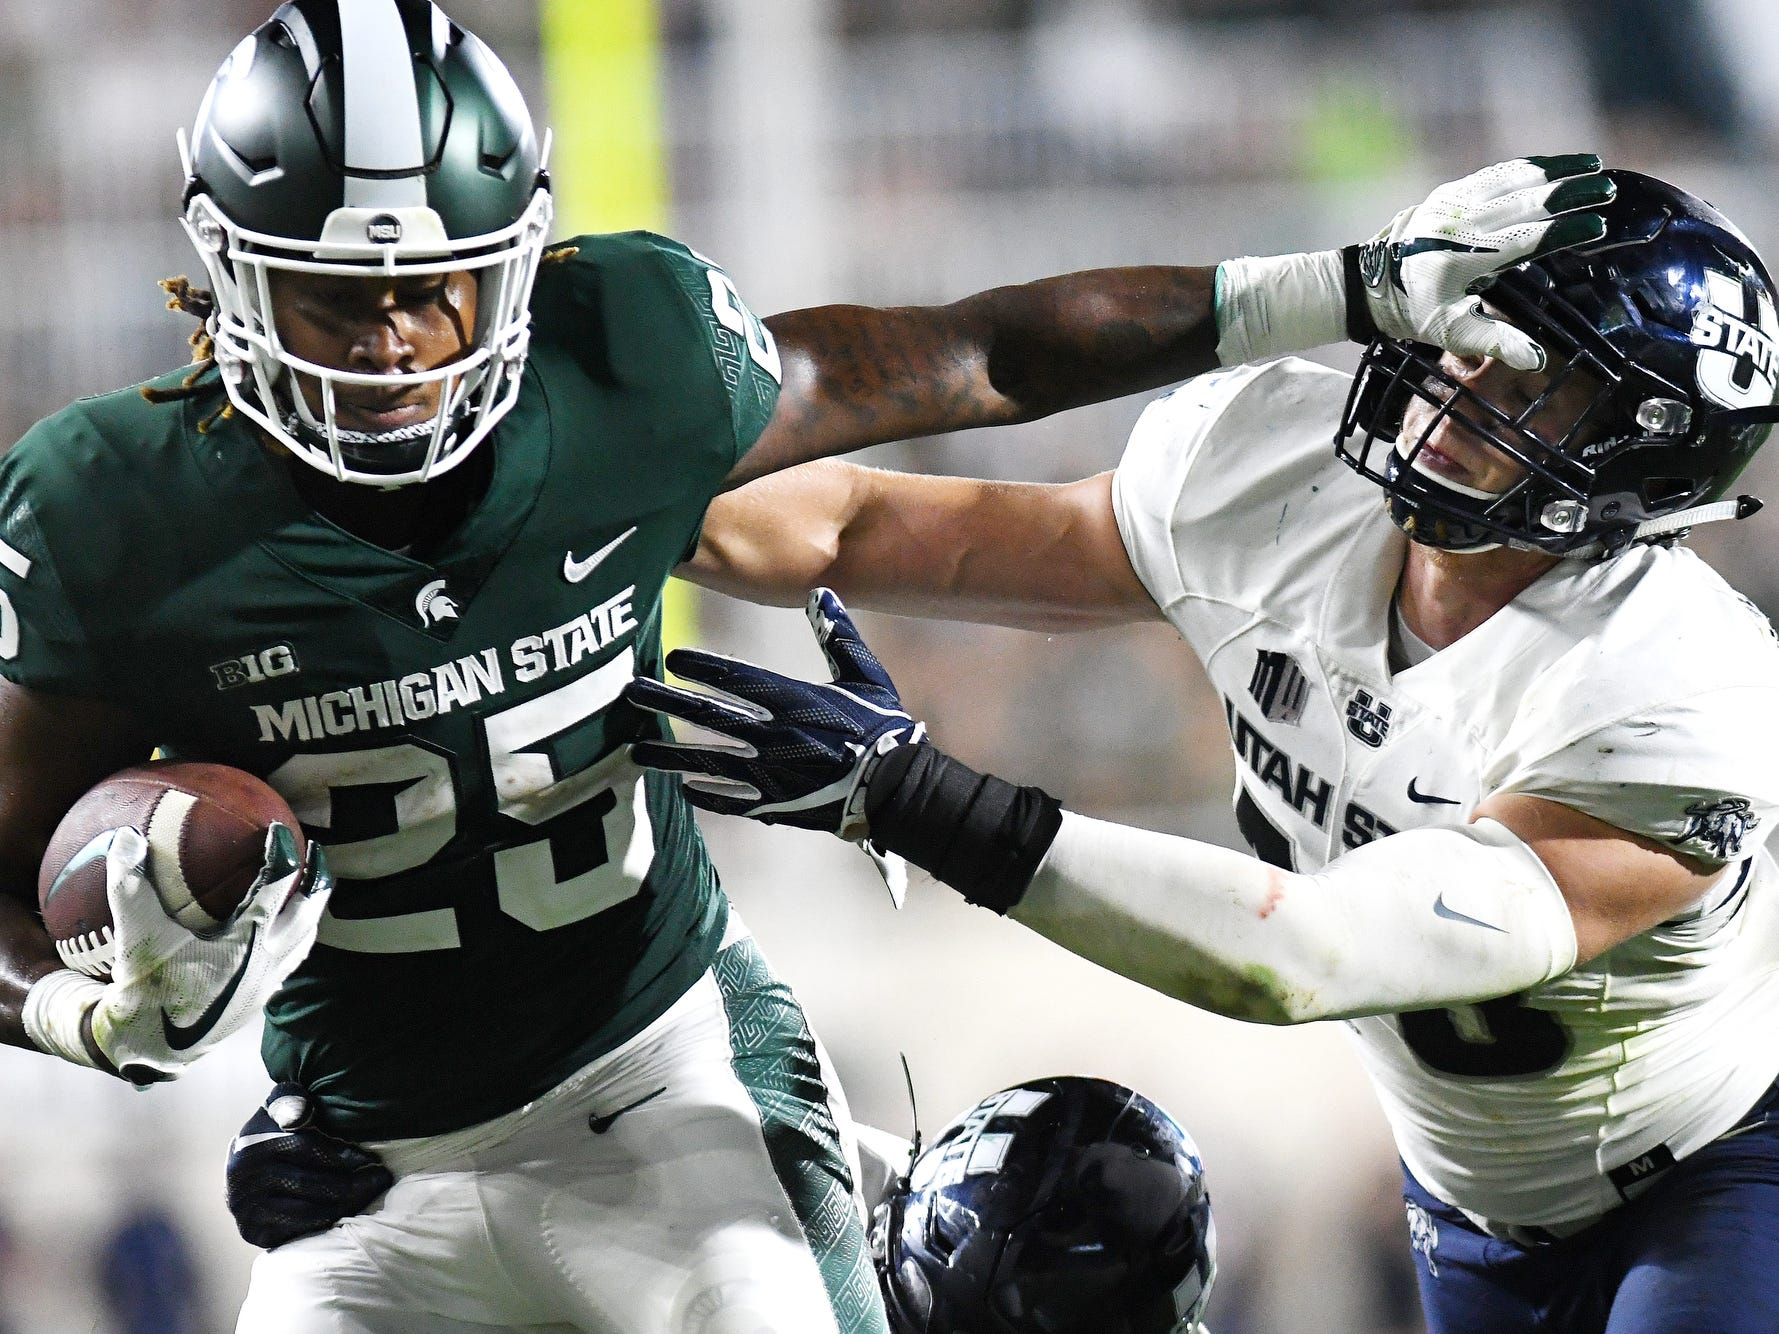 Michigan State's Darrell Stewart Jr., left, stiff arms Utah State's Chase Christiansen during the fourth quarter on Friday, Aug. 31, 2018, at Spartan Stadium in East Lansing.